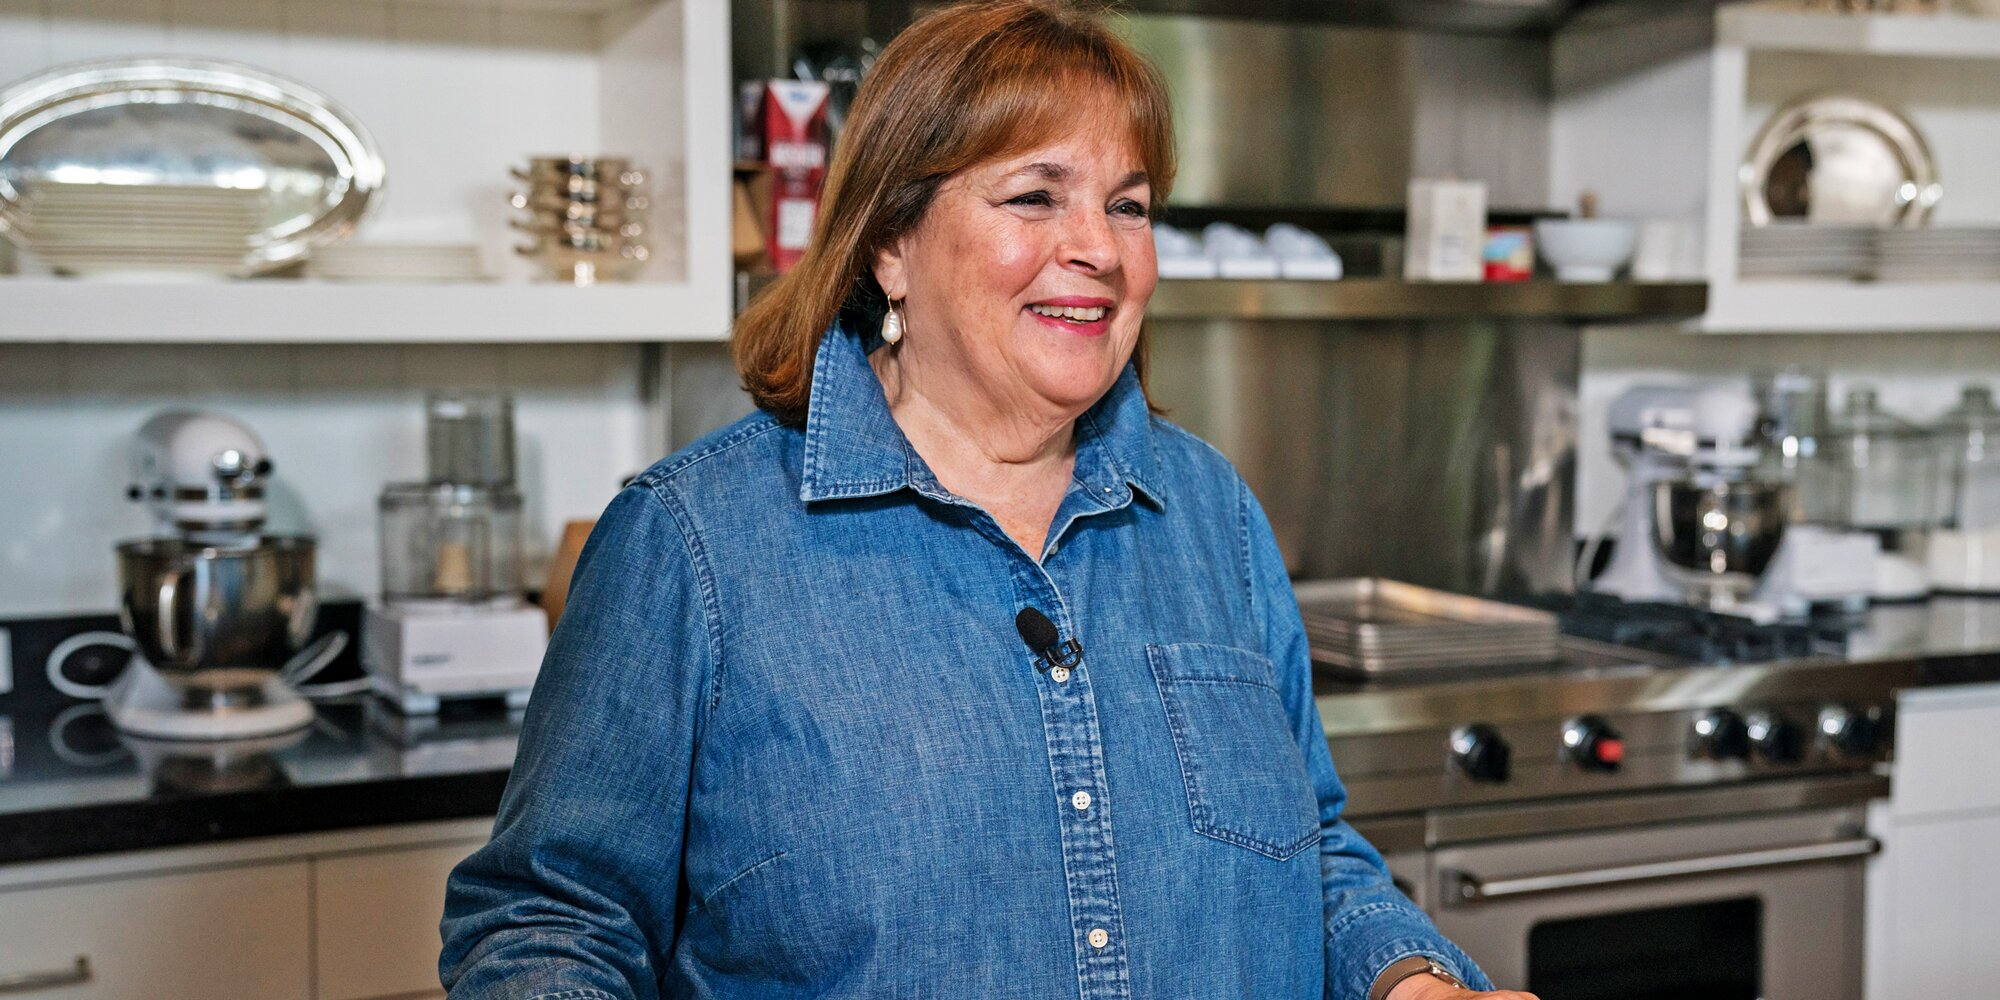 10 Classic Ina Garten Recipes to Make All the Time